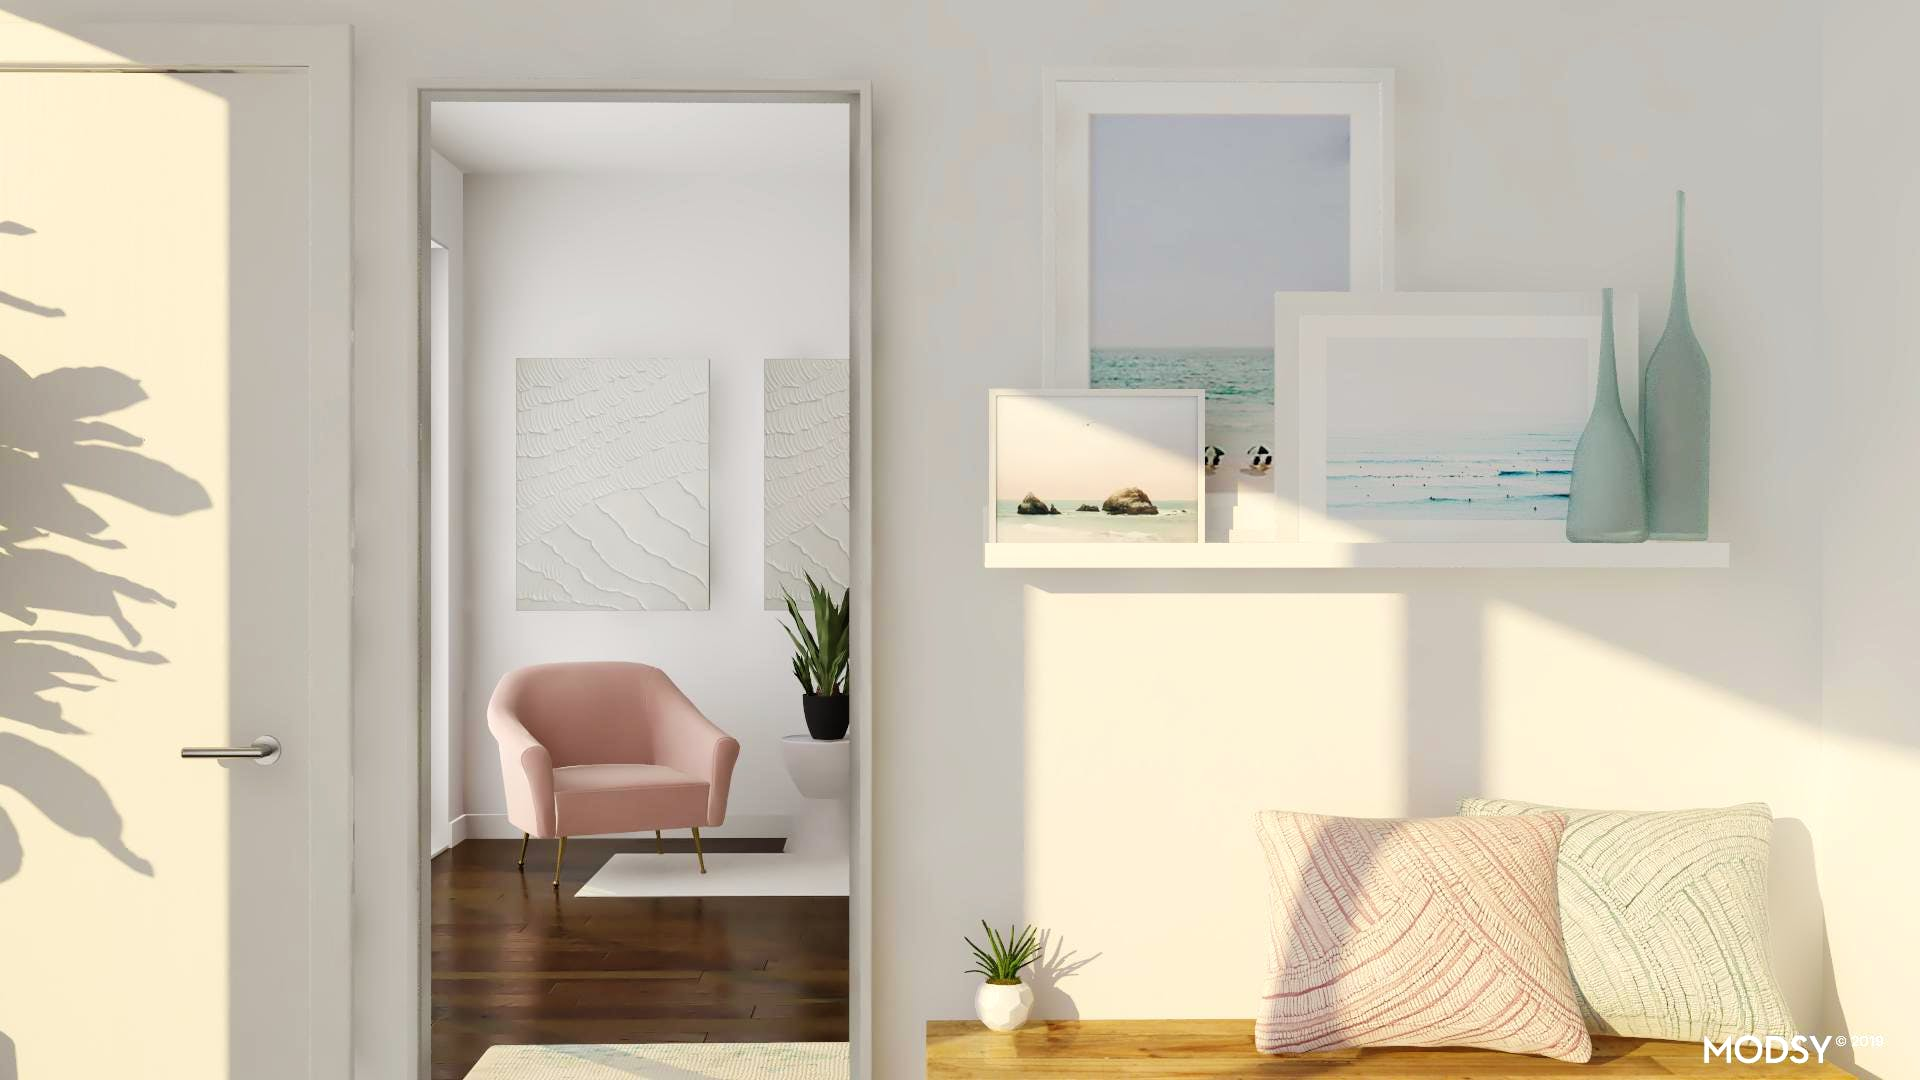 Styling With Pastels For A Light And Modern Entry